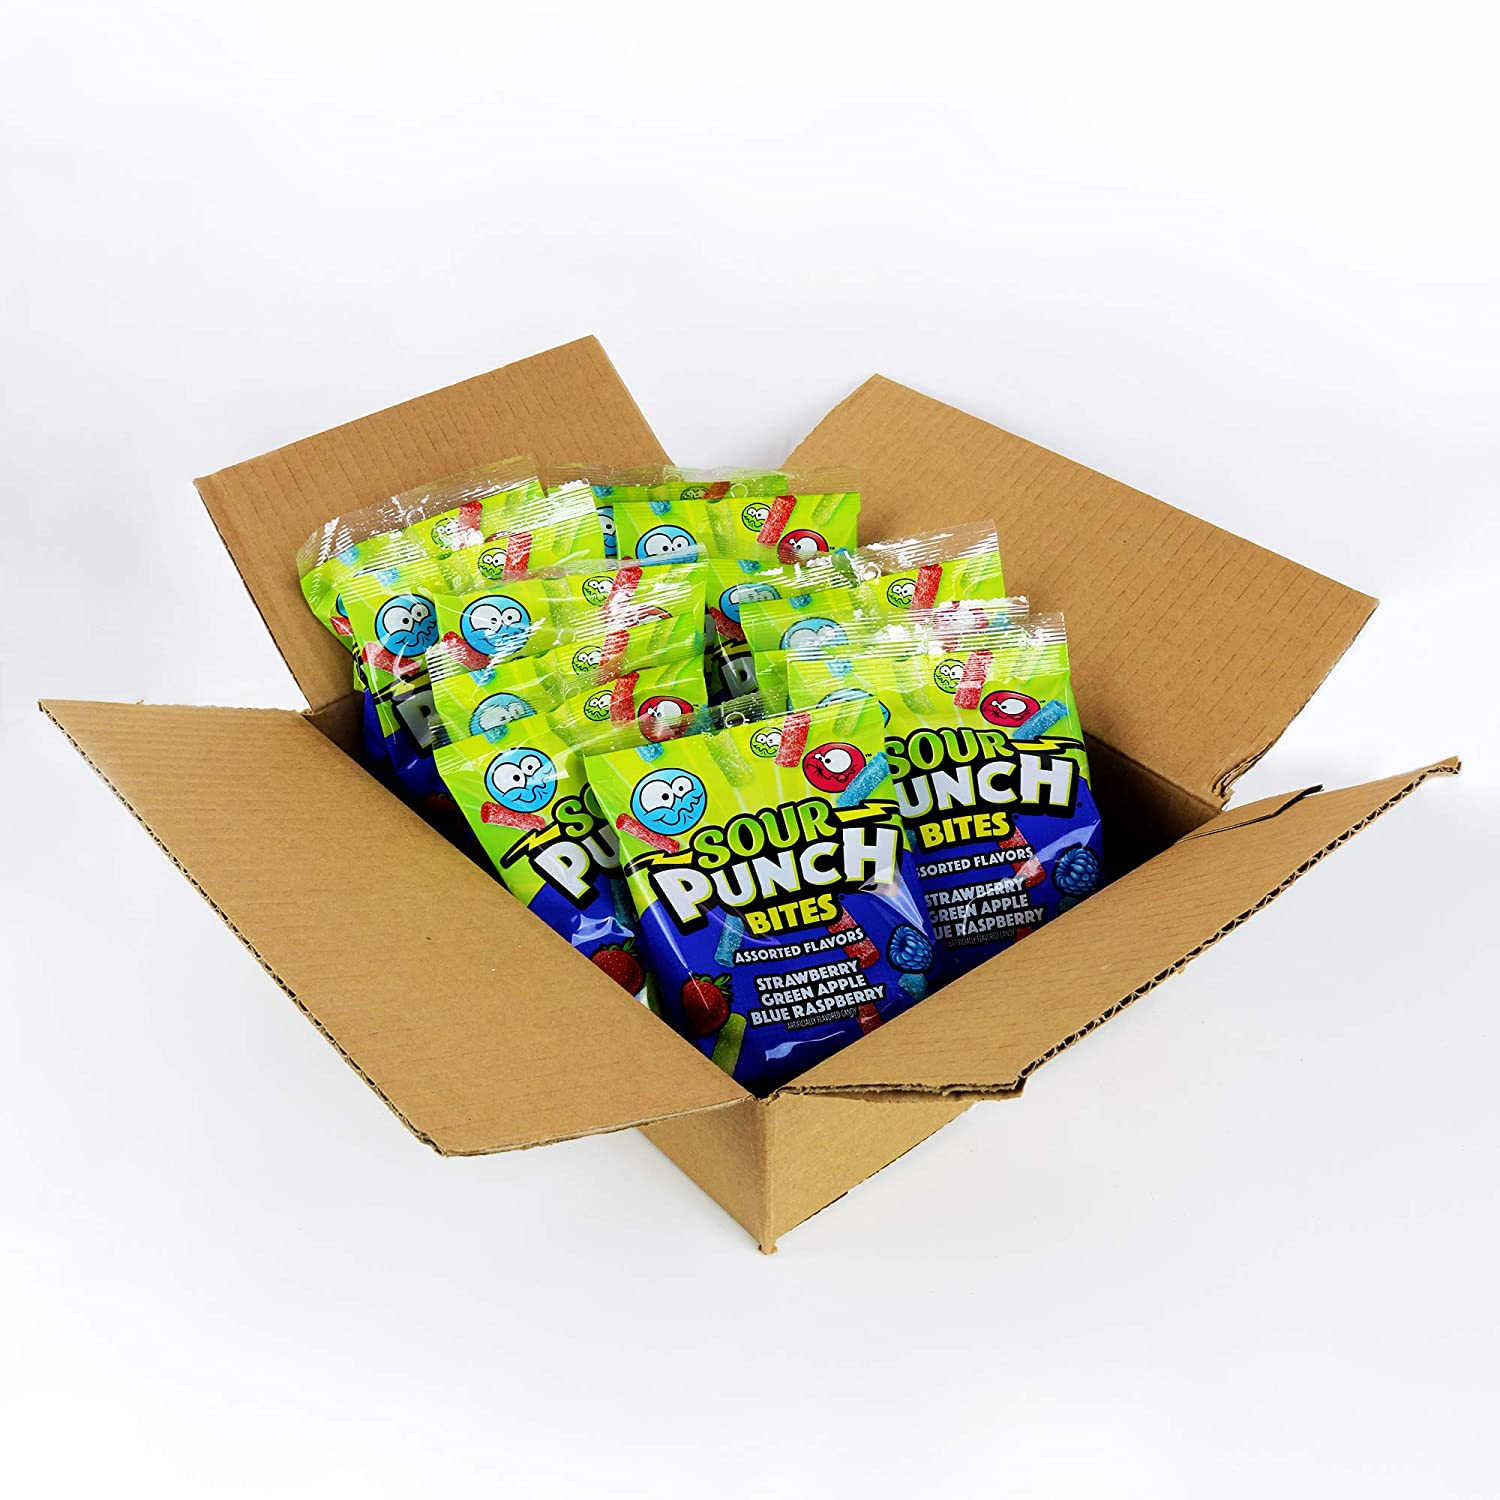 324333c3d Amazon.com : Sour Punch Bites, Assorted Sweet & Sour Fruit Flavors, Chewy  Candy, 5oz Bag (12 Pack) : Grocery & Gourmet Food